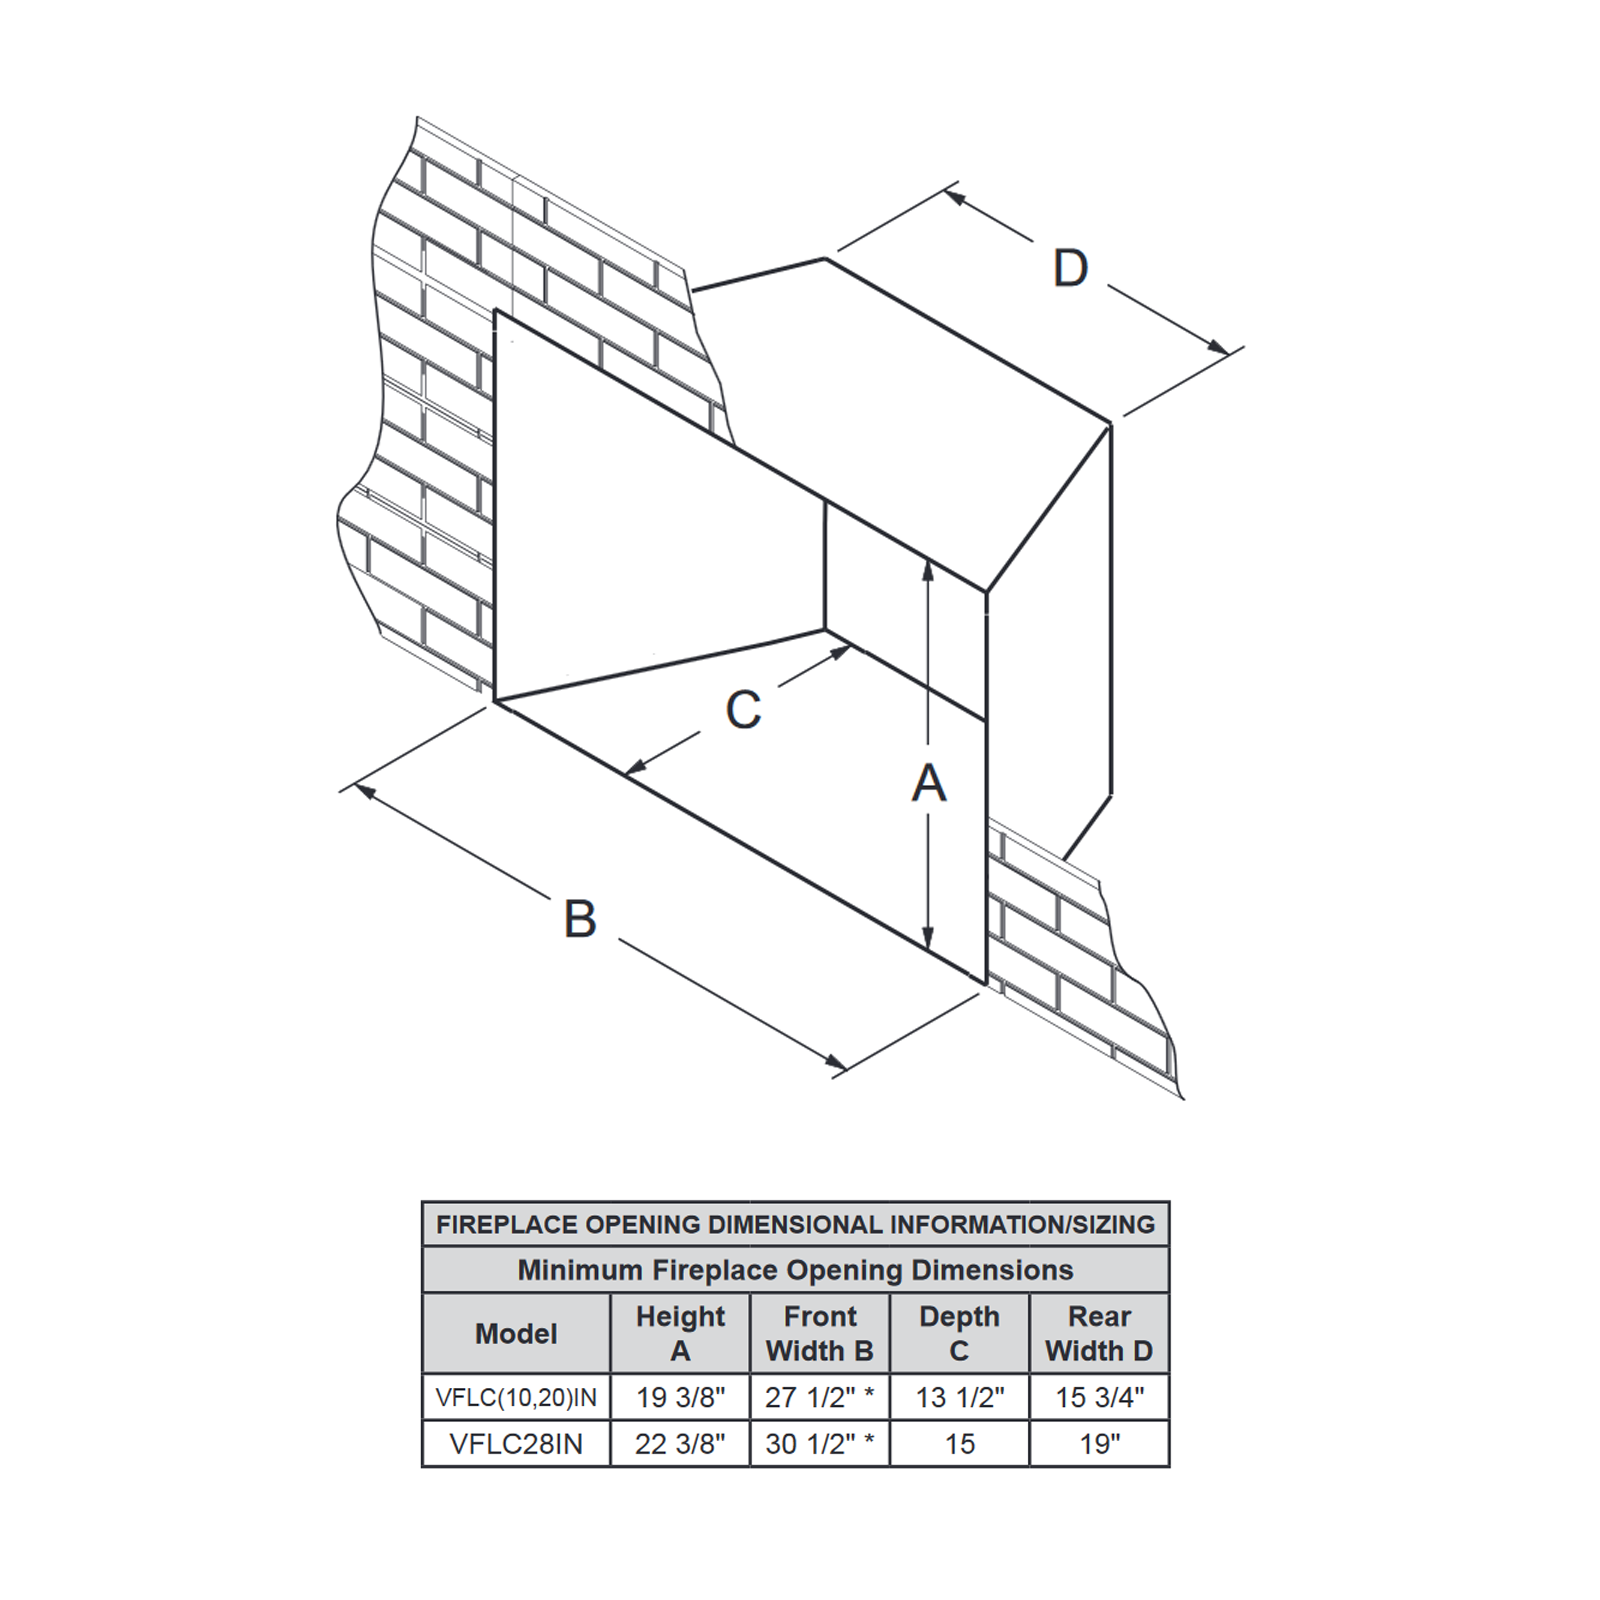 VFLC28 Technical Drawing 2